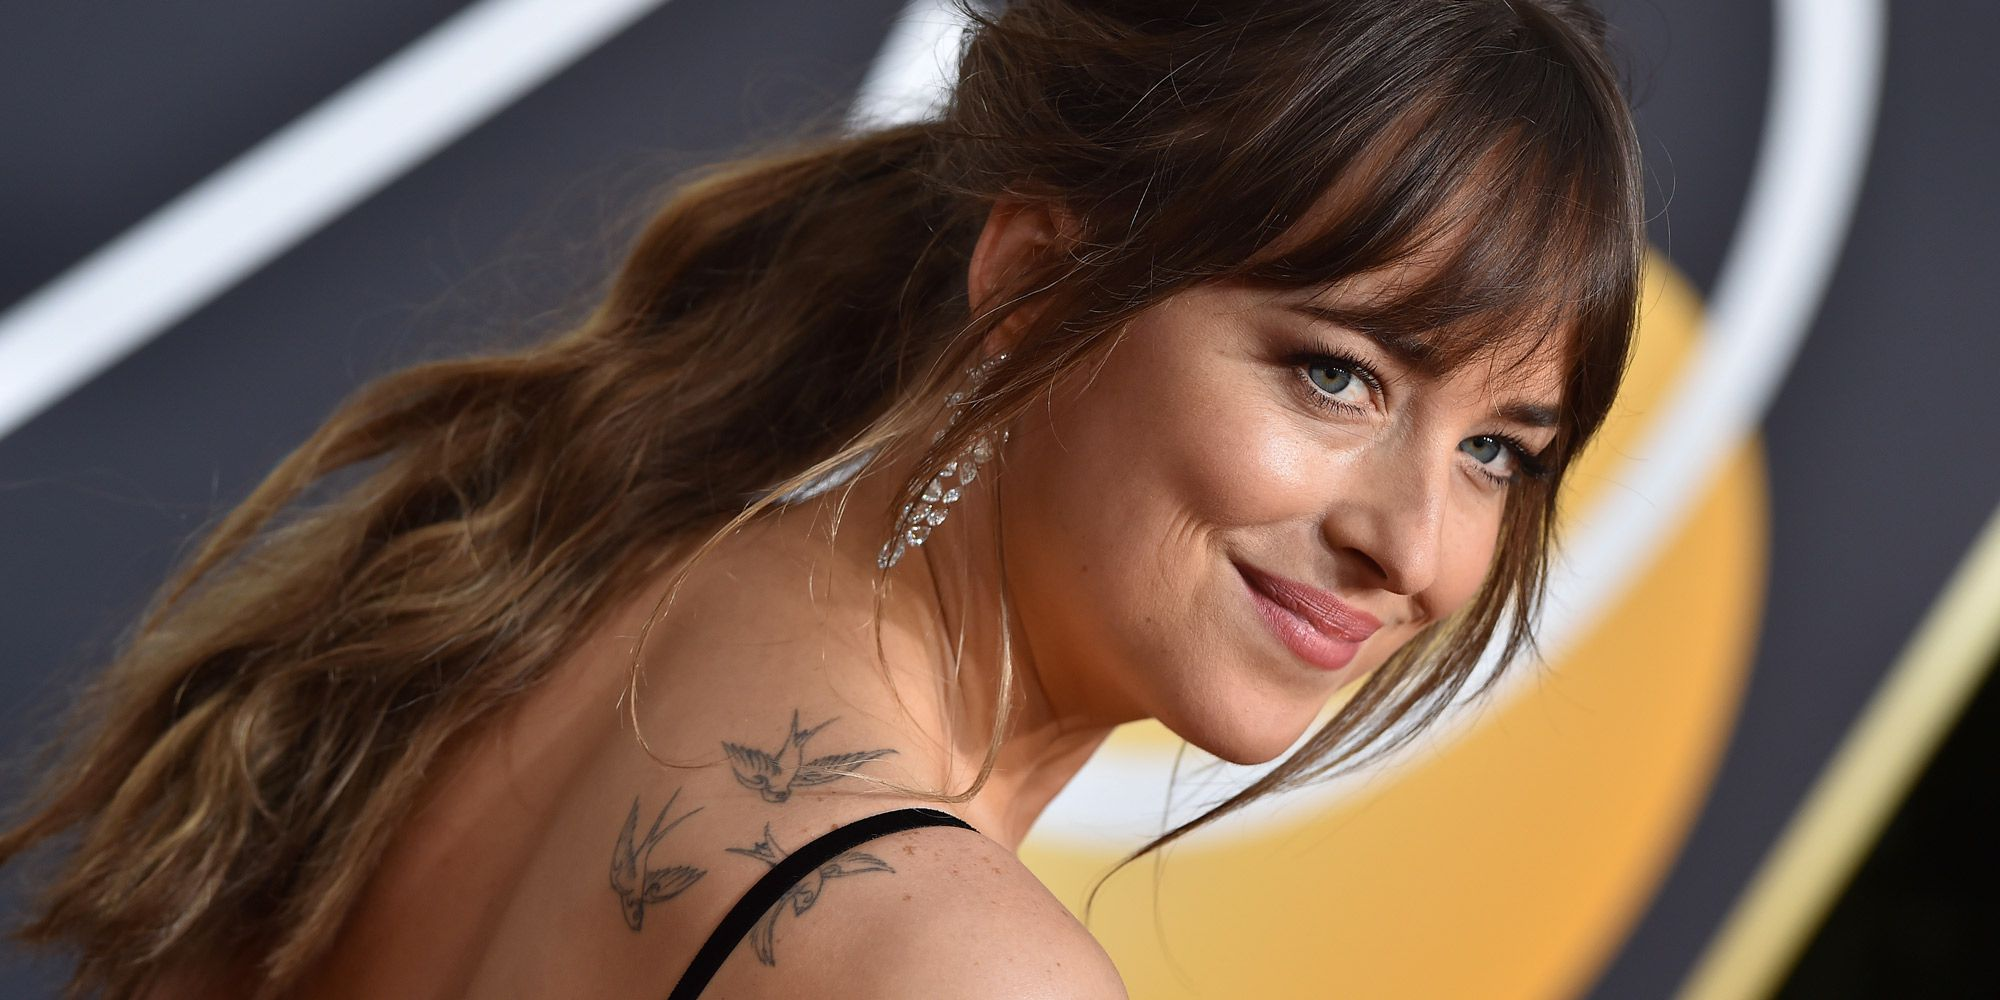 50 sfumature di grigio Dakota Johnson